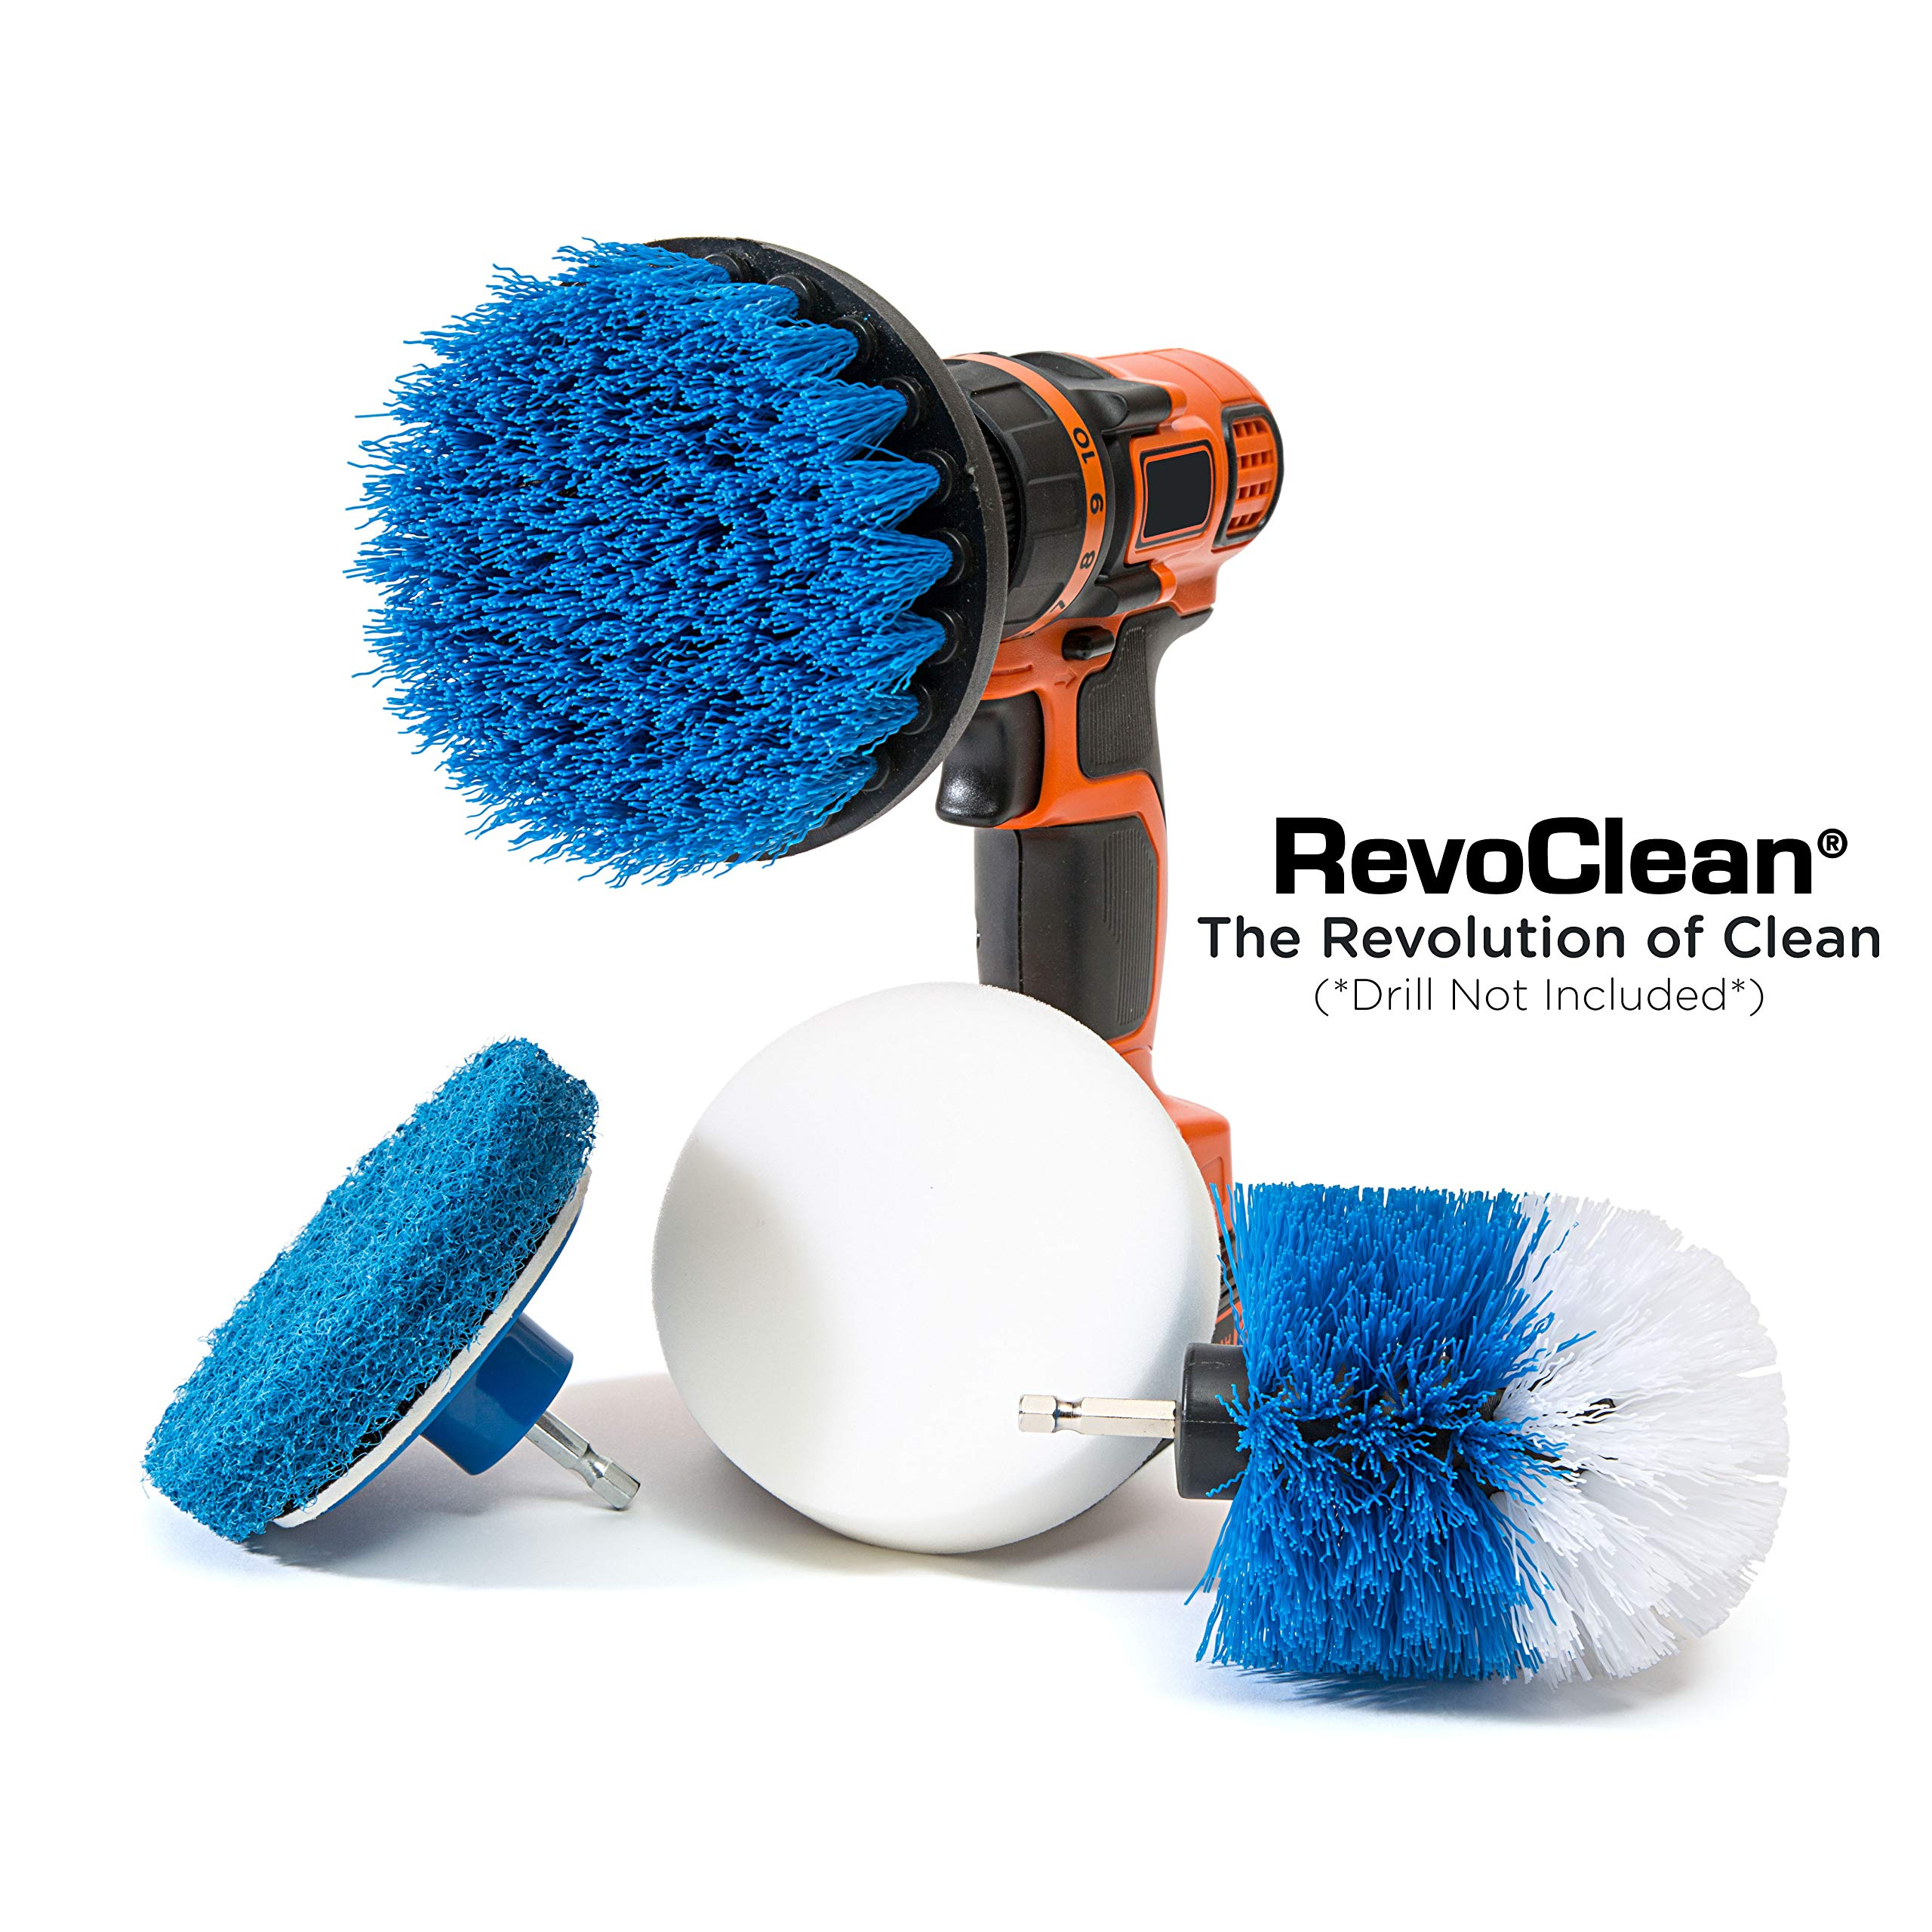 RevoClean 4 Piece Scrub Brush Power Drill Attachments-All Purpose Time Saving Kit-Perfect for Cleaning Grout, Tile, Counter, Shower, Grill, Floor, Kitchen, Blue & White by RevoClean